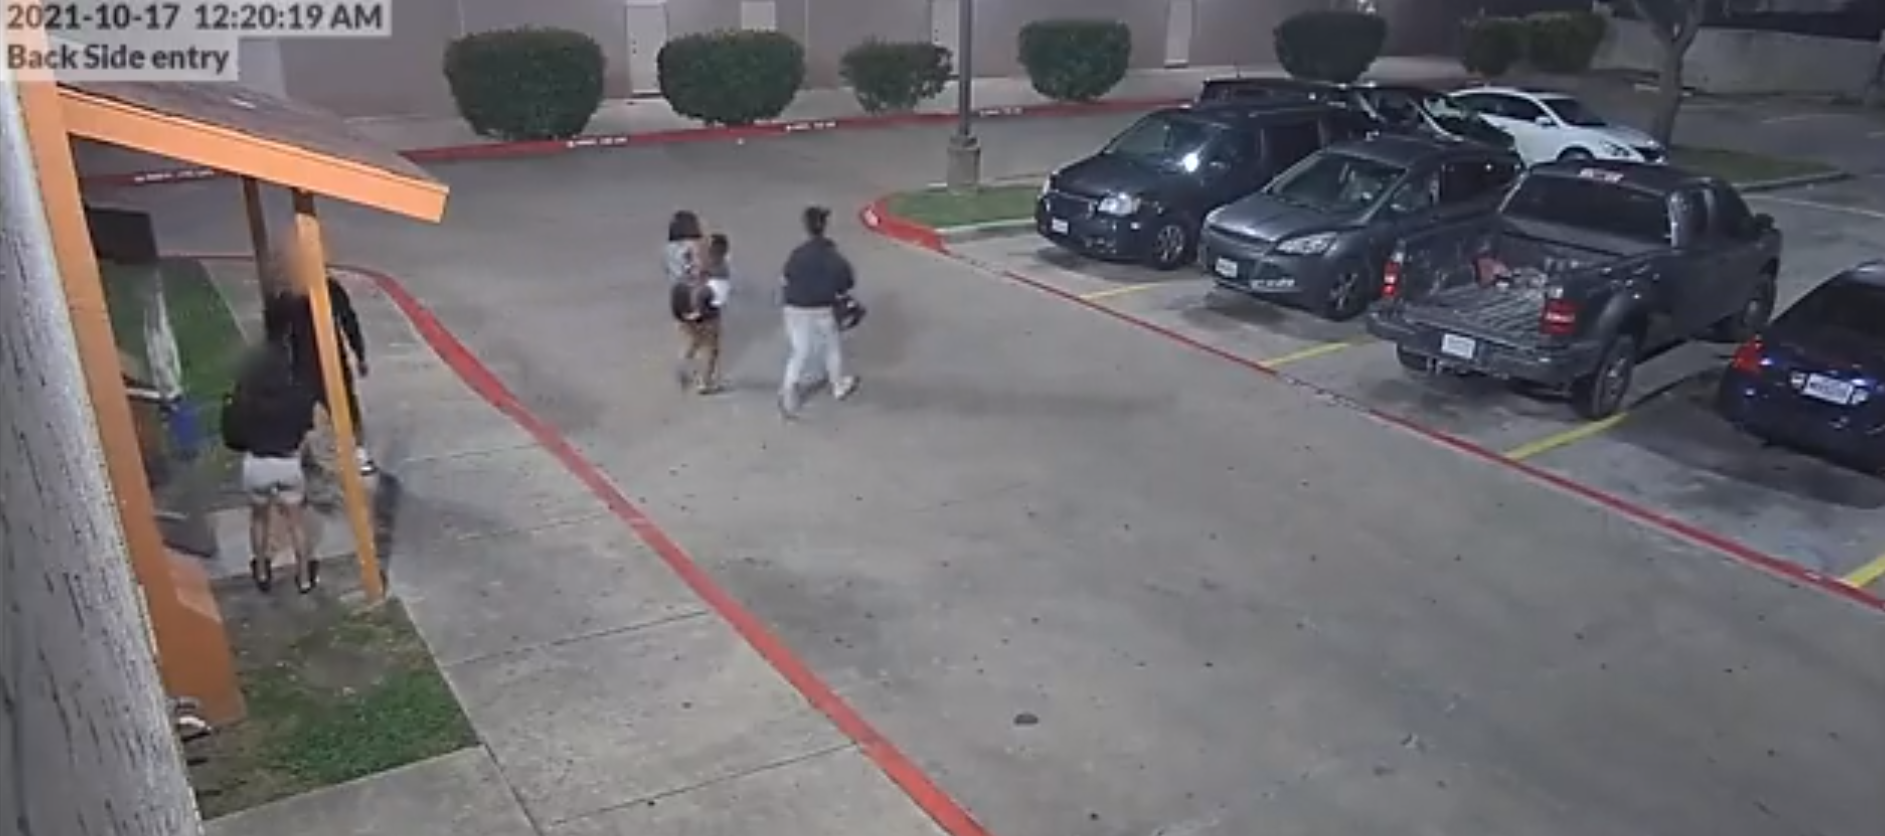 Garland Police Arrest Three Suspects in Kidnapping of Toddler From Motel